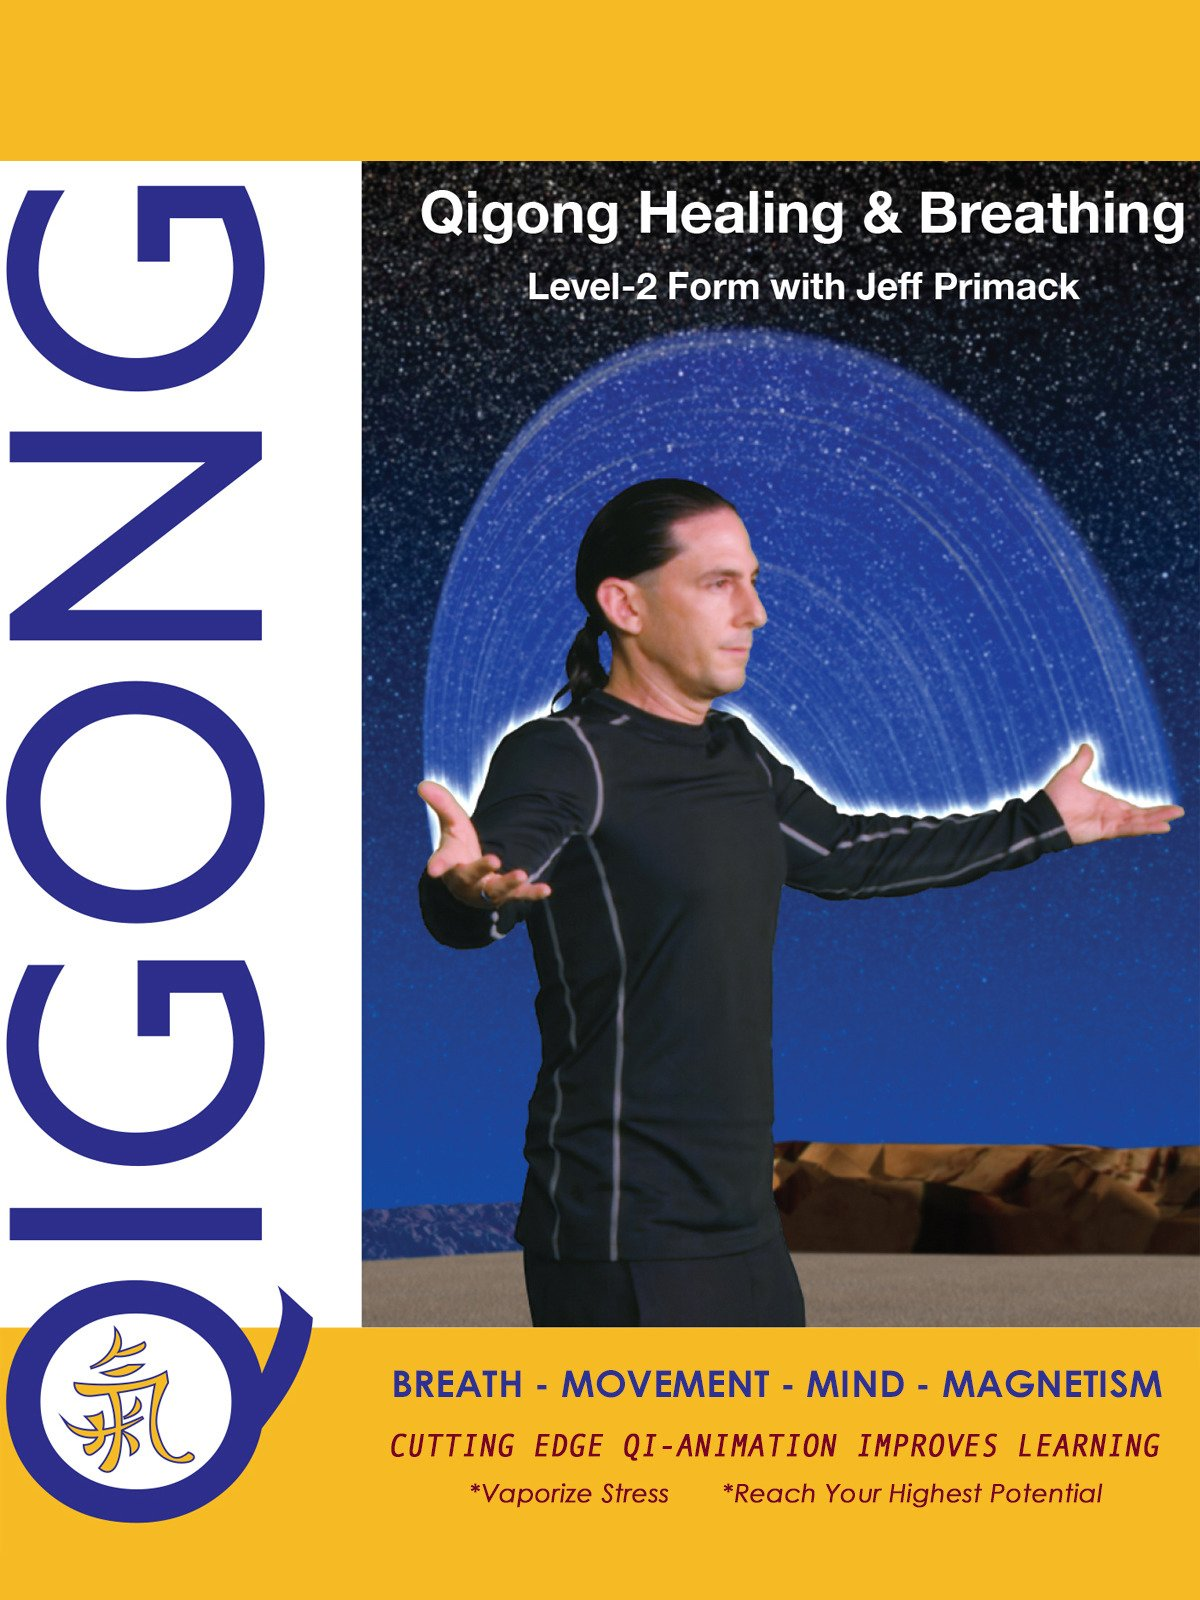 Qigong Healing & Breathing:  Level-2 Form with Jeff Primack